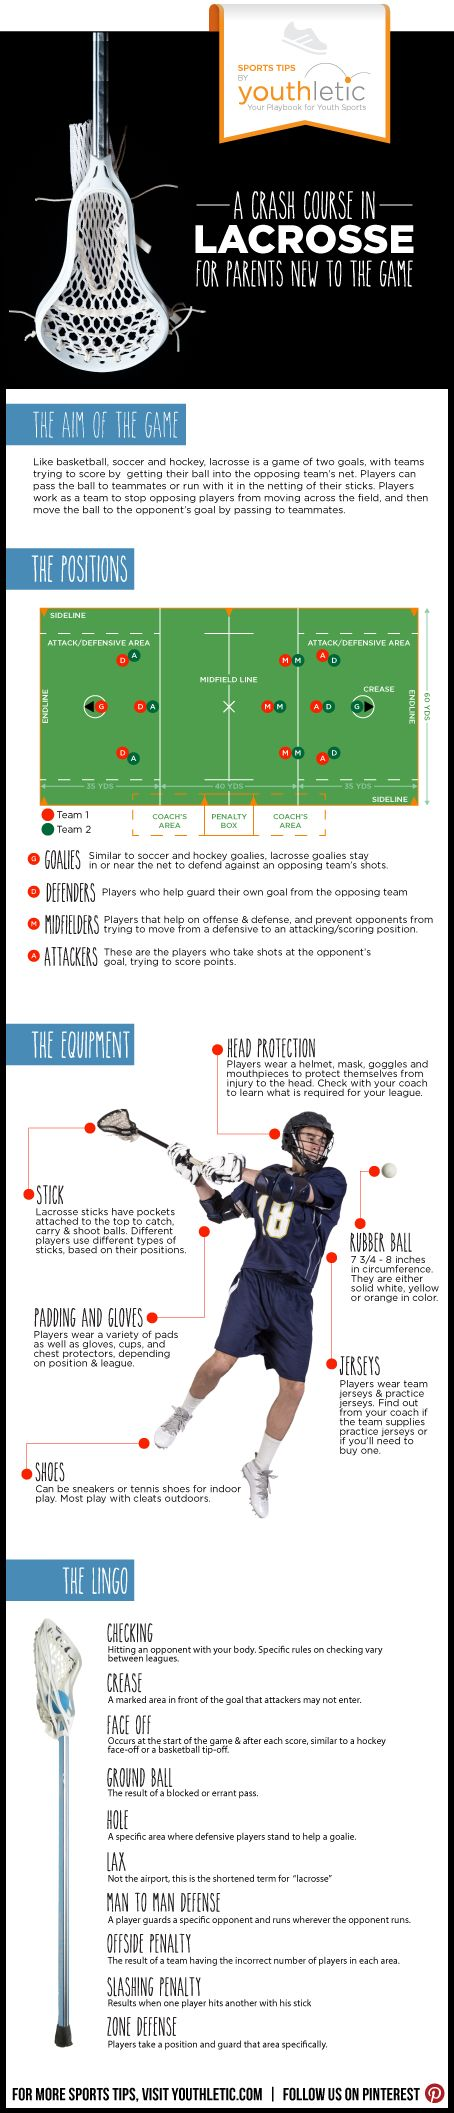 Lacrosse information for parents new to the game LAX - For lacrosse equipment visit http://www.bishopsport.co.uk/lacrosse.html